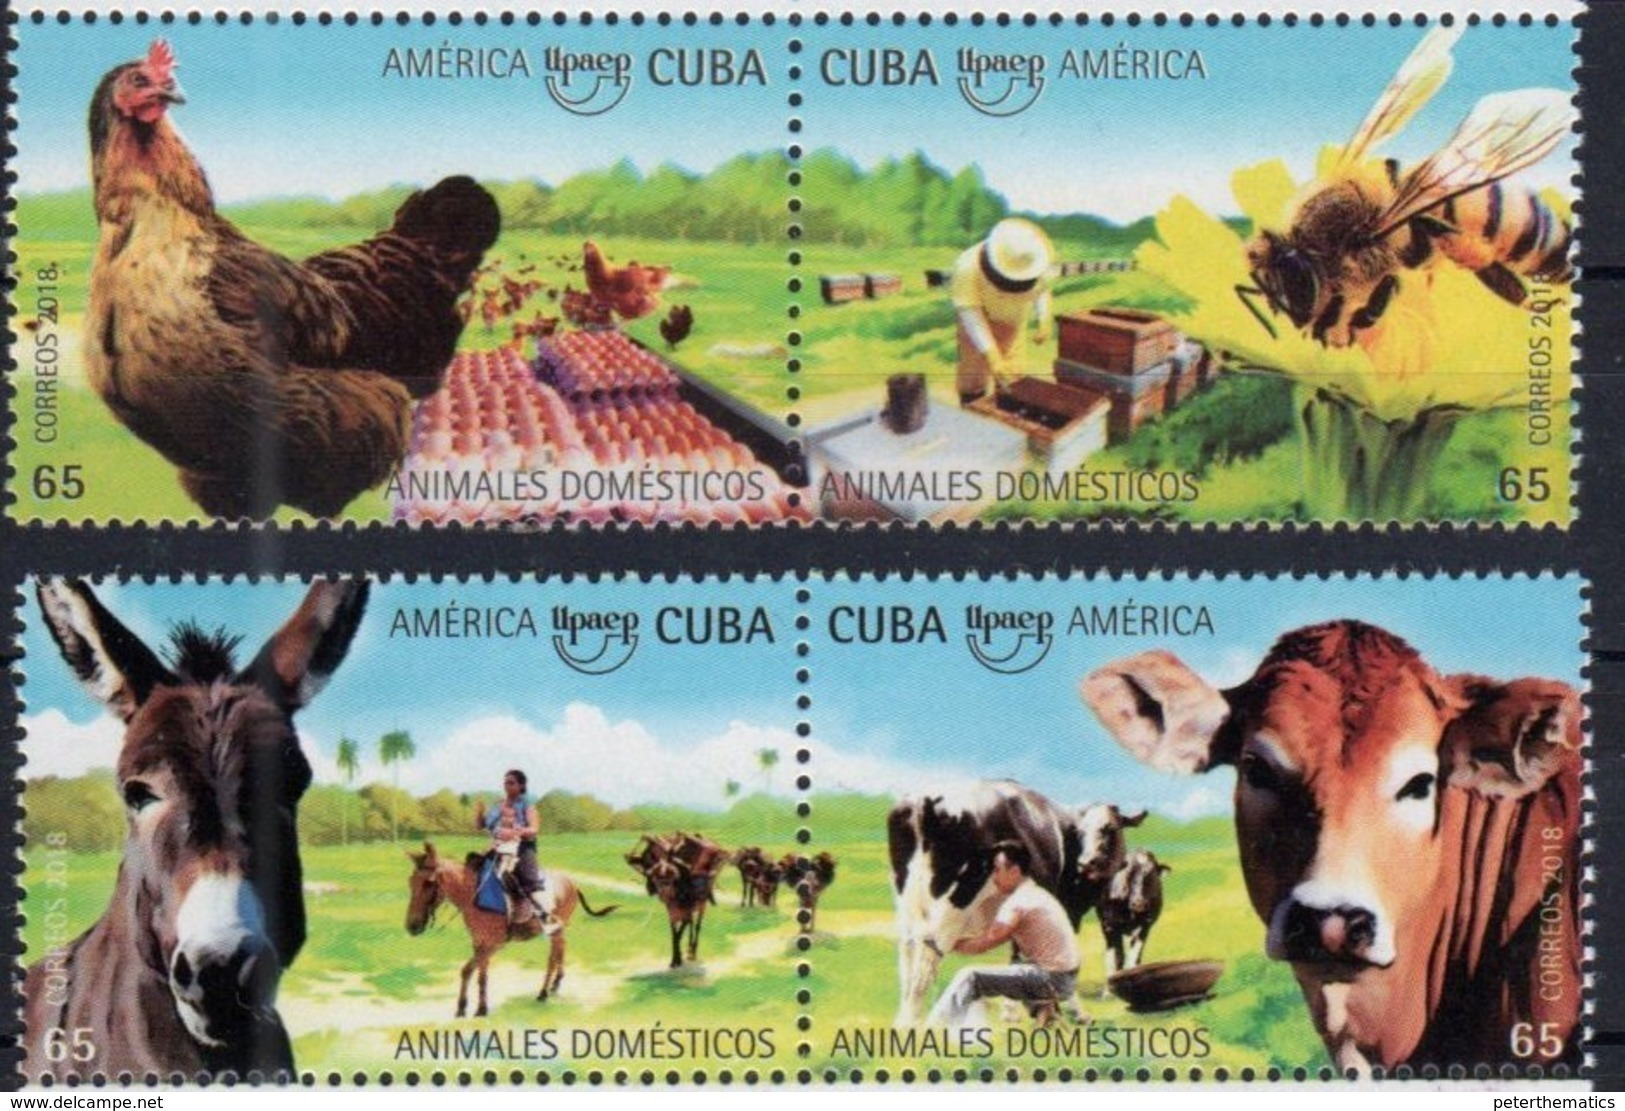 UPAEP, 2018, DOMESTIC ANIMALS, DONKEYS, CHICKENS, COWS, BEES, 4v - Abeilles